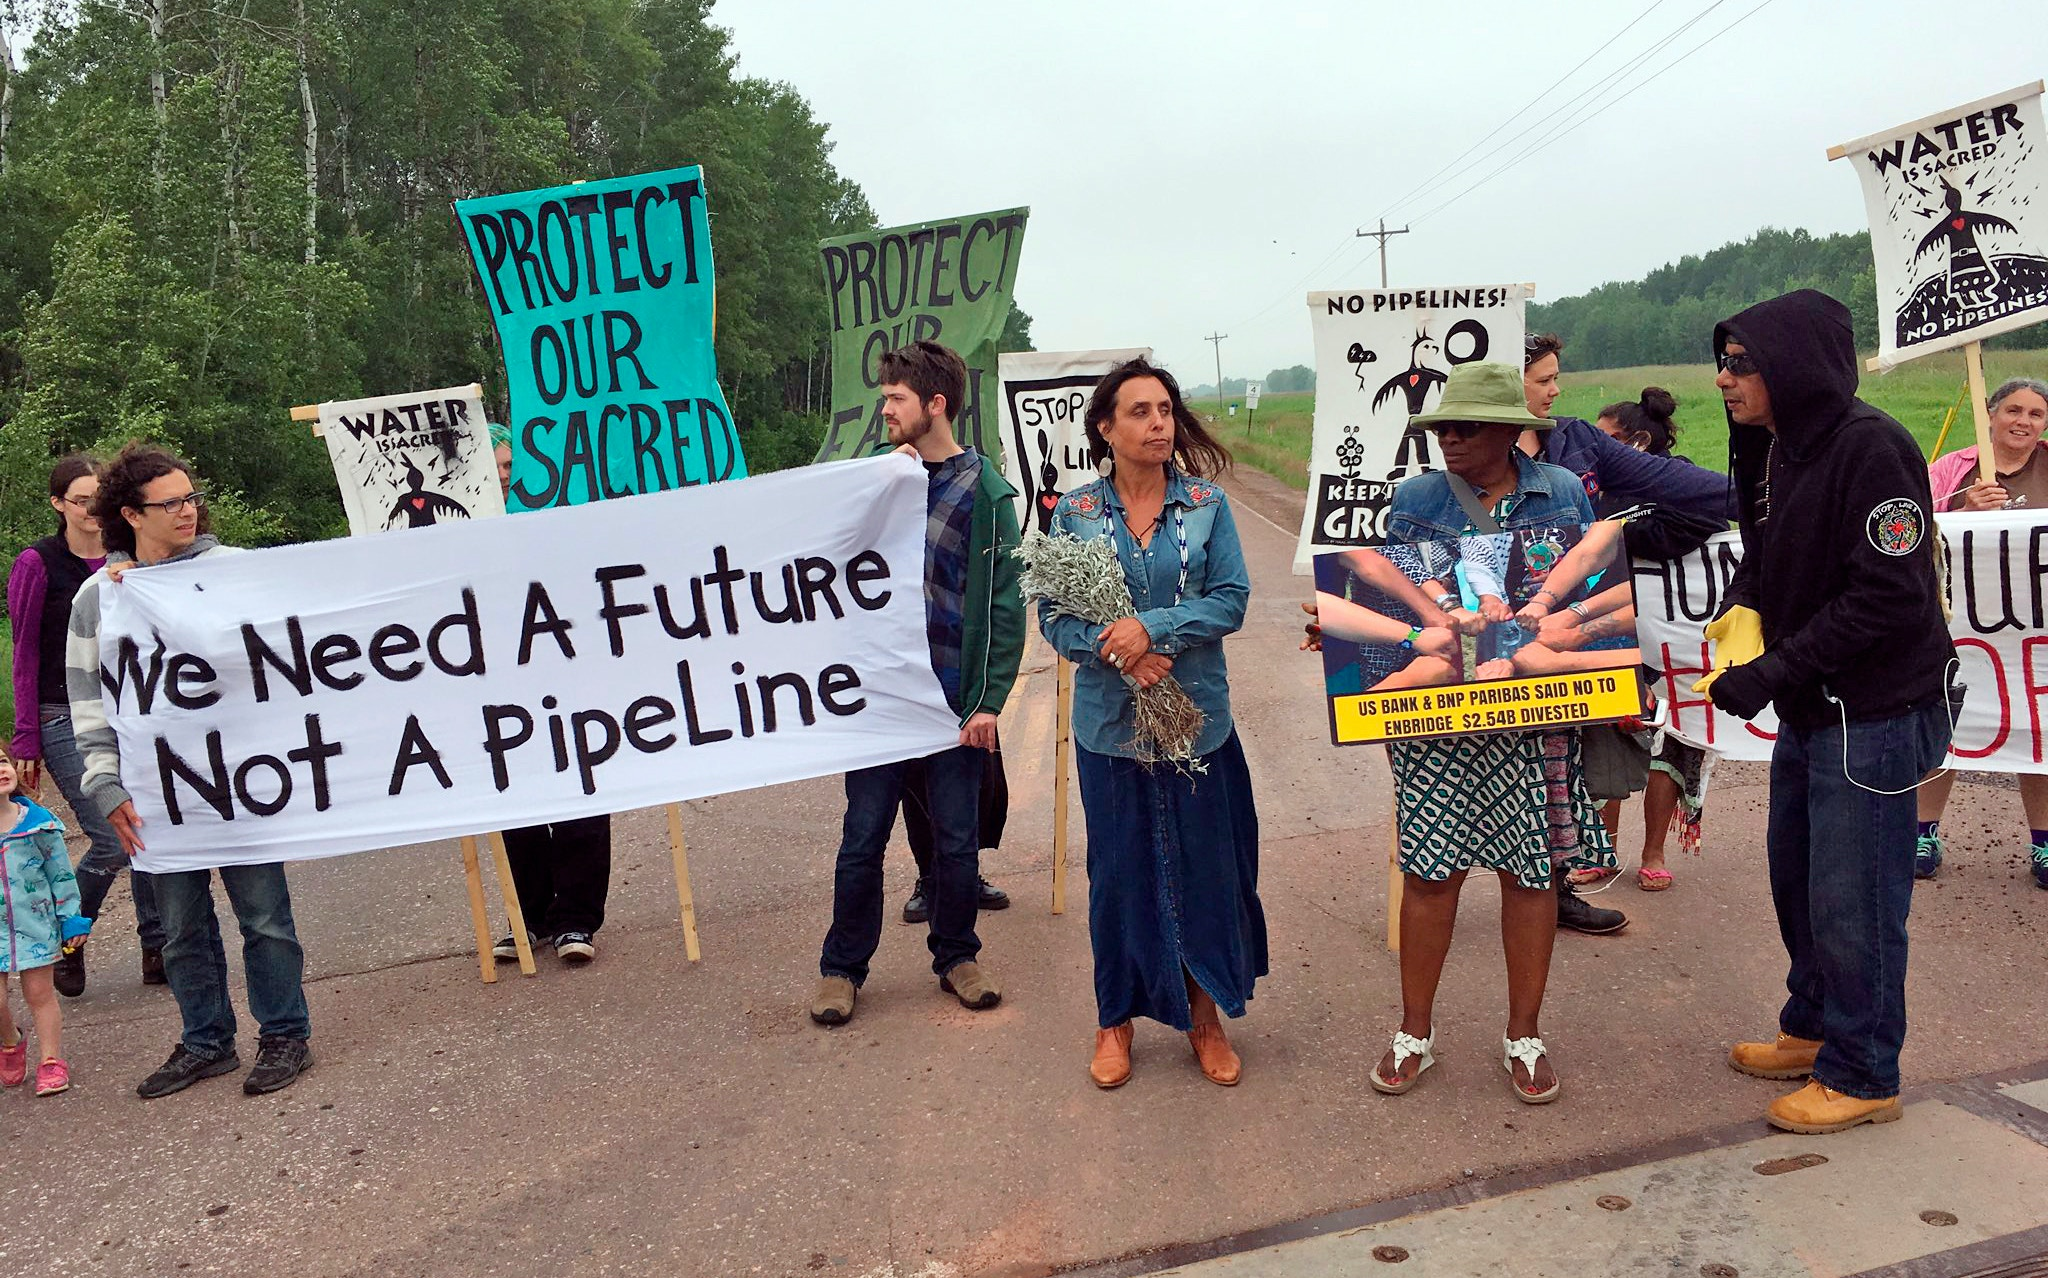 Winona Laduke? and others demonstrate at a rally held at the Wisconsin-Minnesota border on the morning after Line 3 is approved, Friday, June 29, 2018. They're vowing to fight to keep the oil pipeline from being built across Minnesota. The Minnesota Public Utilities Commission on Thursday determined the project is necessary and approved the Canadian company's preferred route across northern Minnesota, with modifications and conditions that Enbridge considers minor. (Dan Kraker/Minnesota Public Radio via AP)